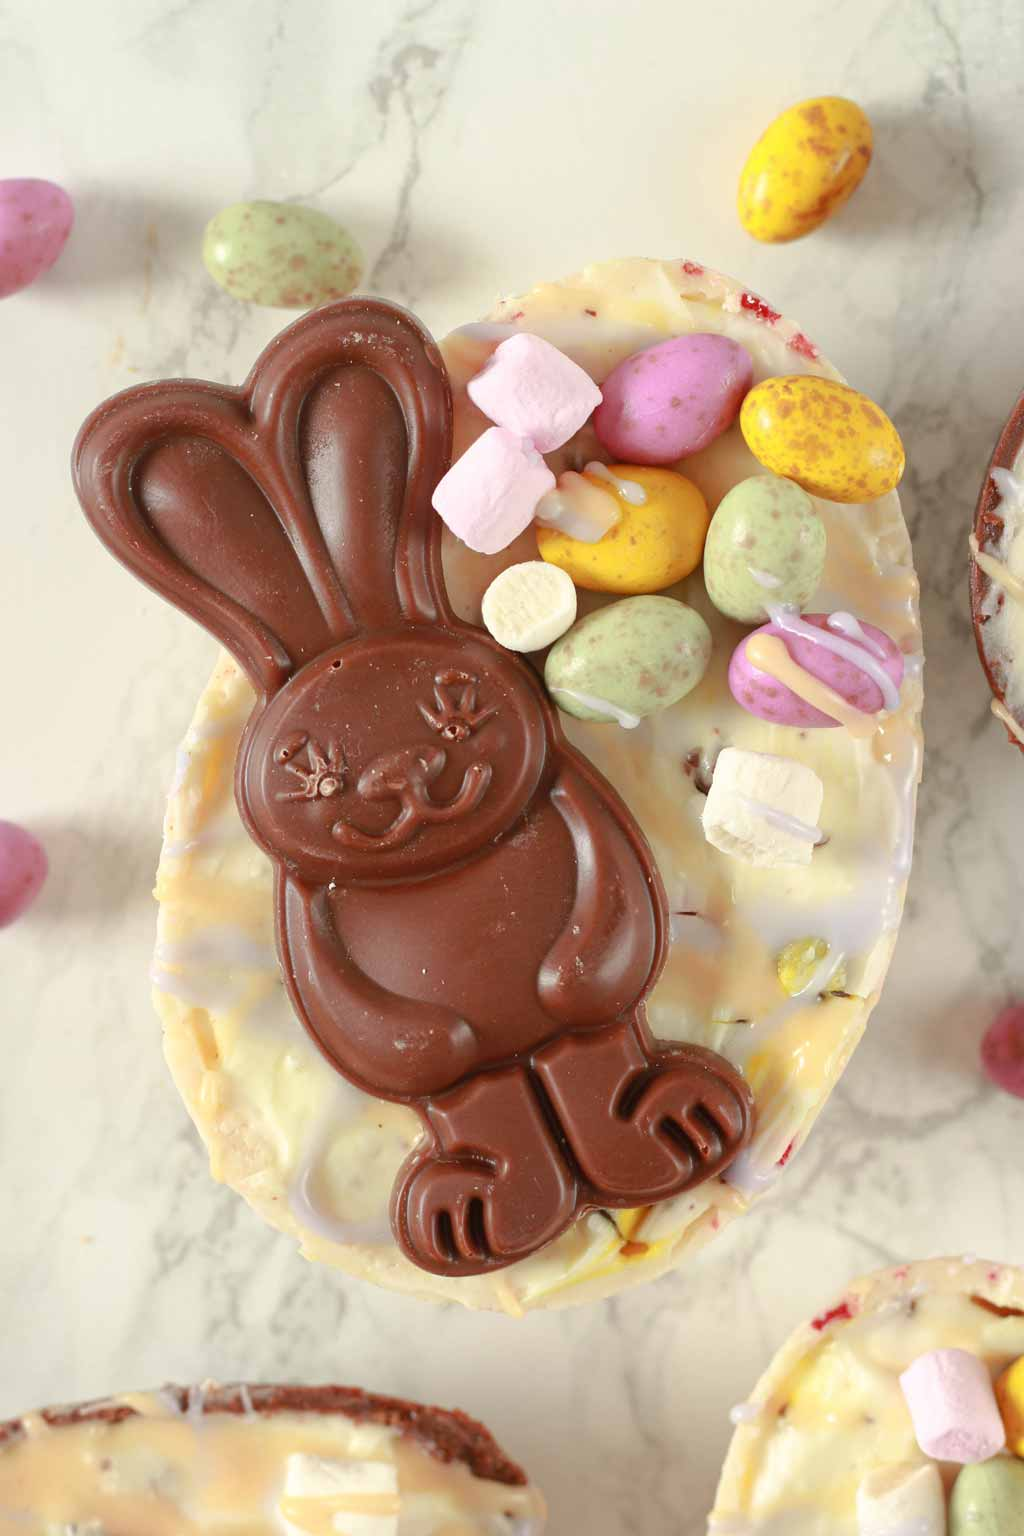 Cheesecake Filled White Easter Egg Topped With A Vegan Chocolate Bunny And Mini Eggs